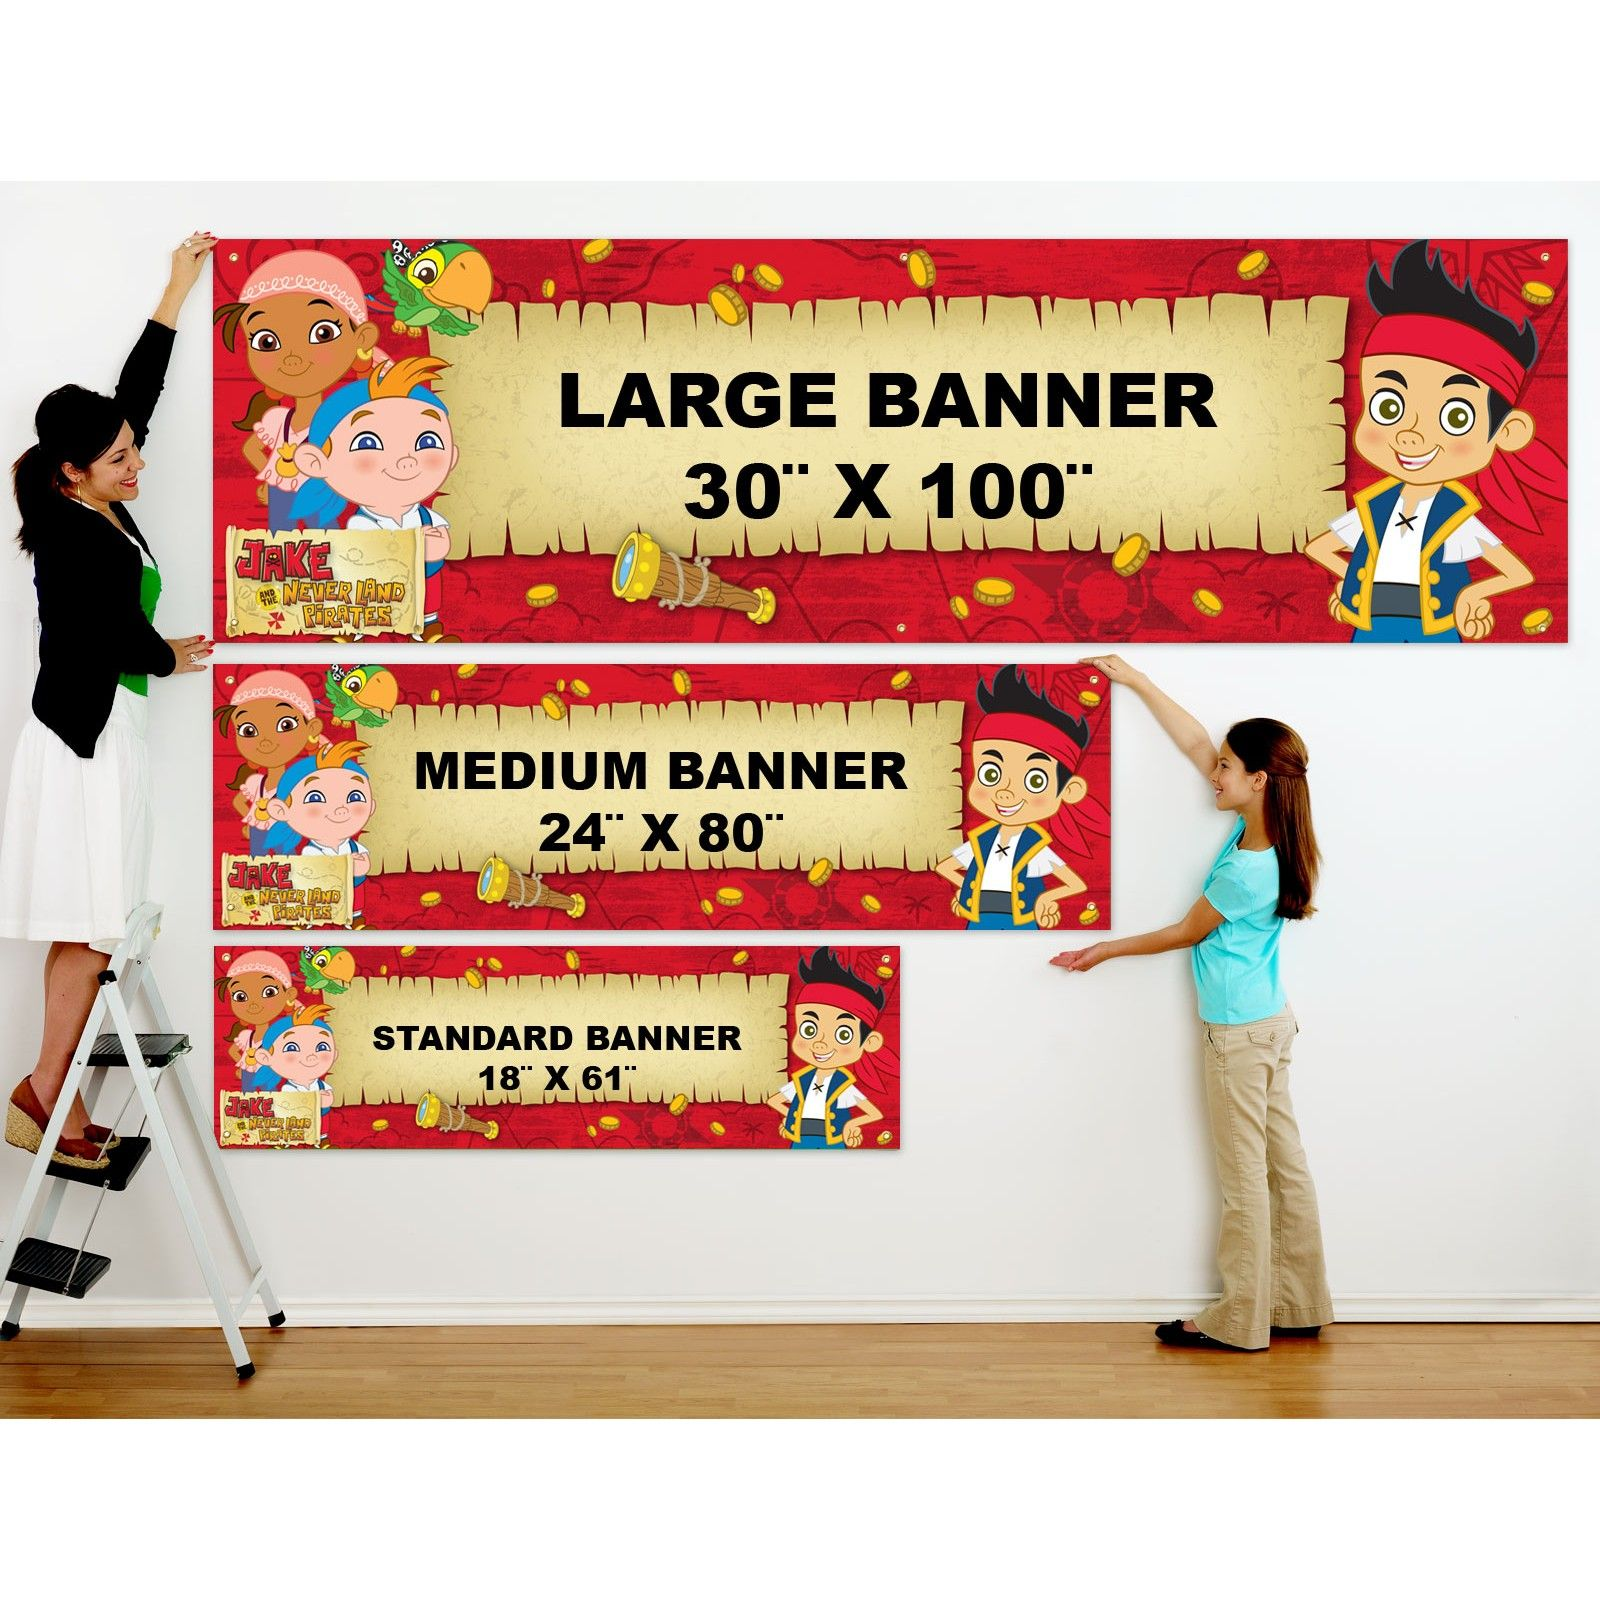 jake and the neverland pirates birthday banner ; 6fbf099271fc835ef68619d7d612ebec